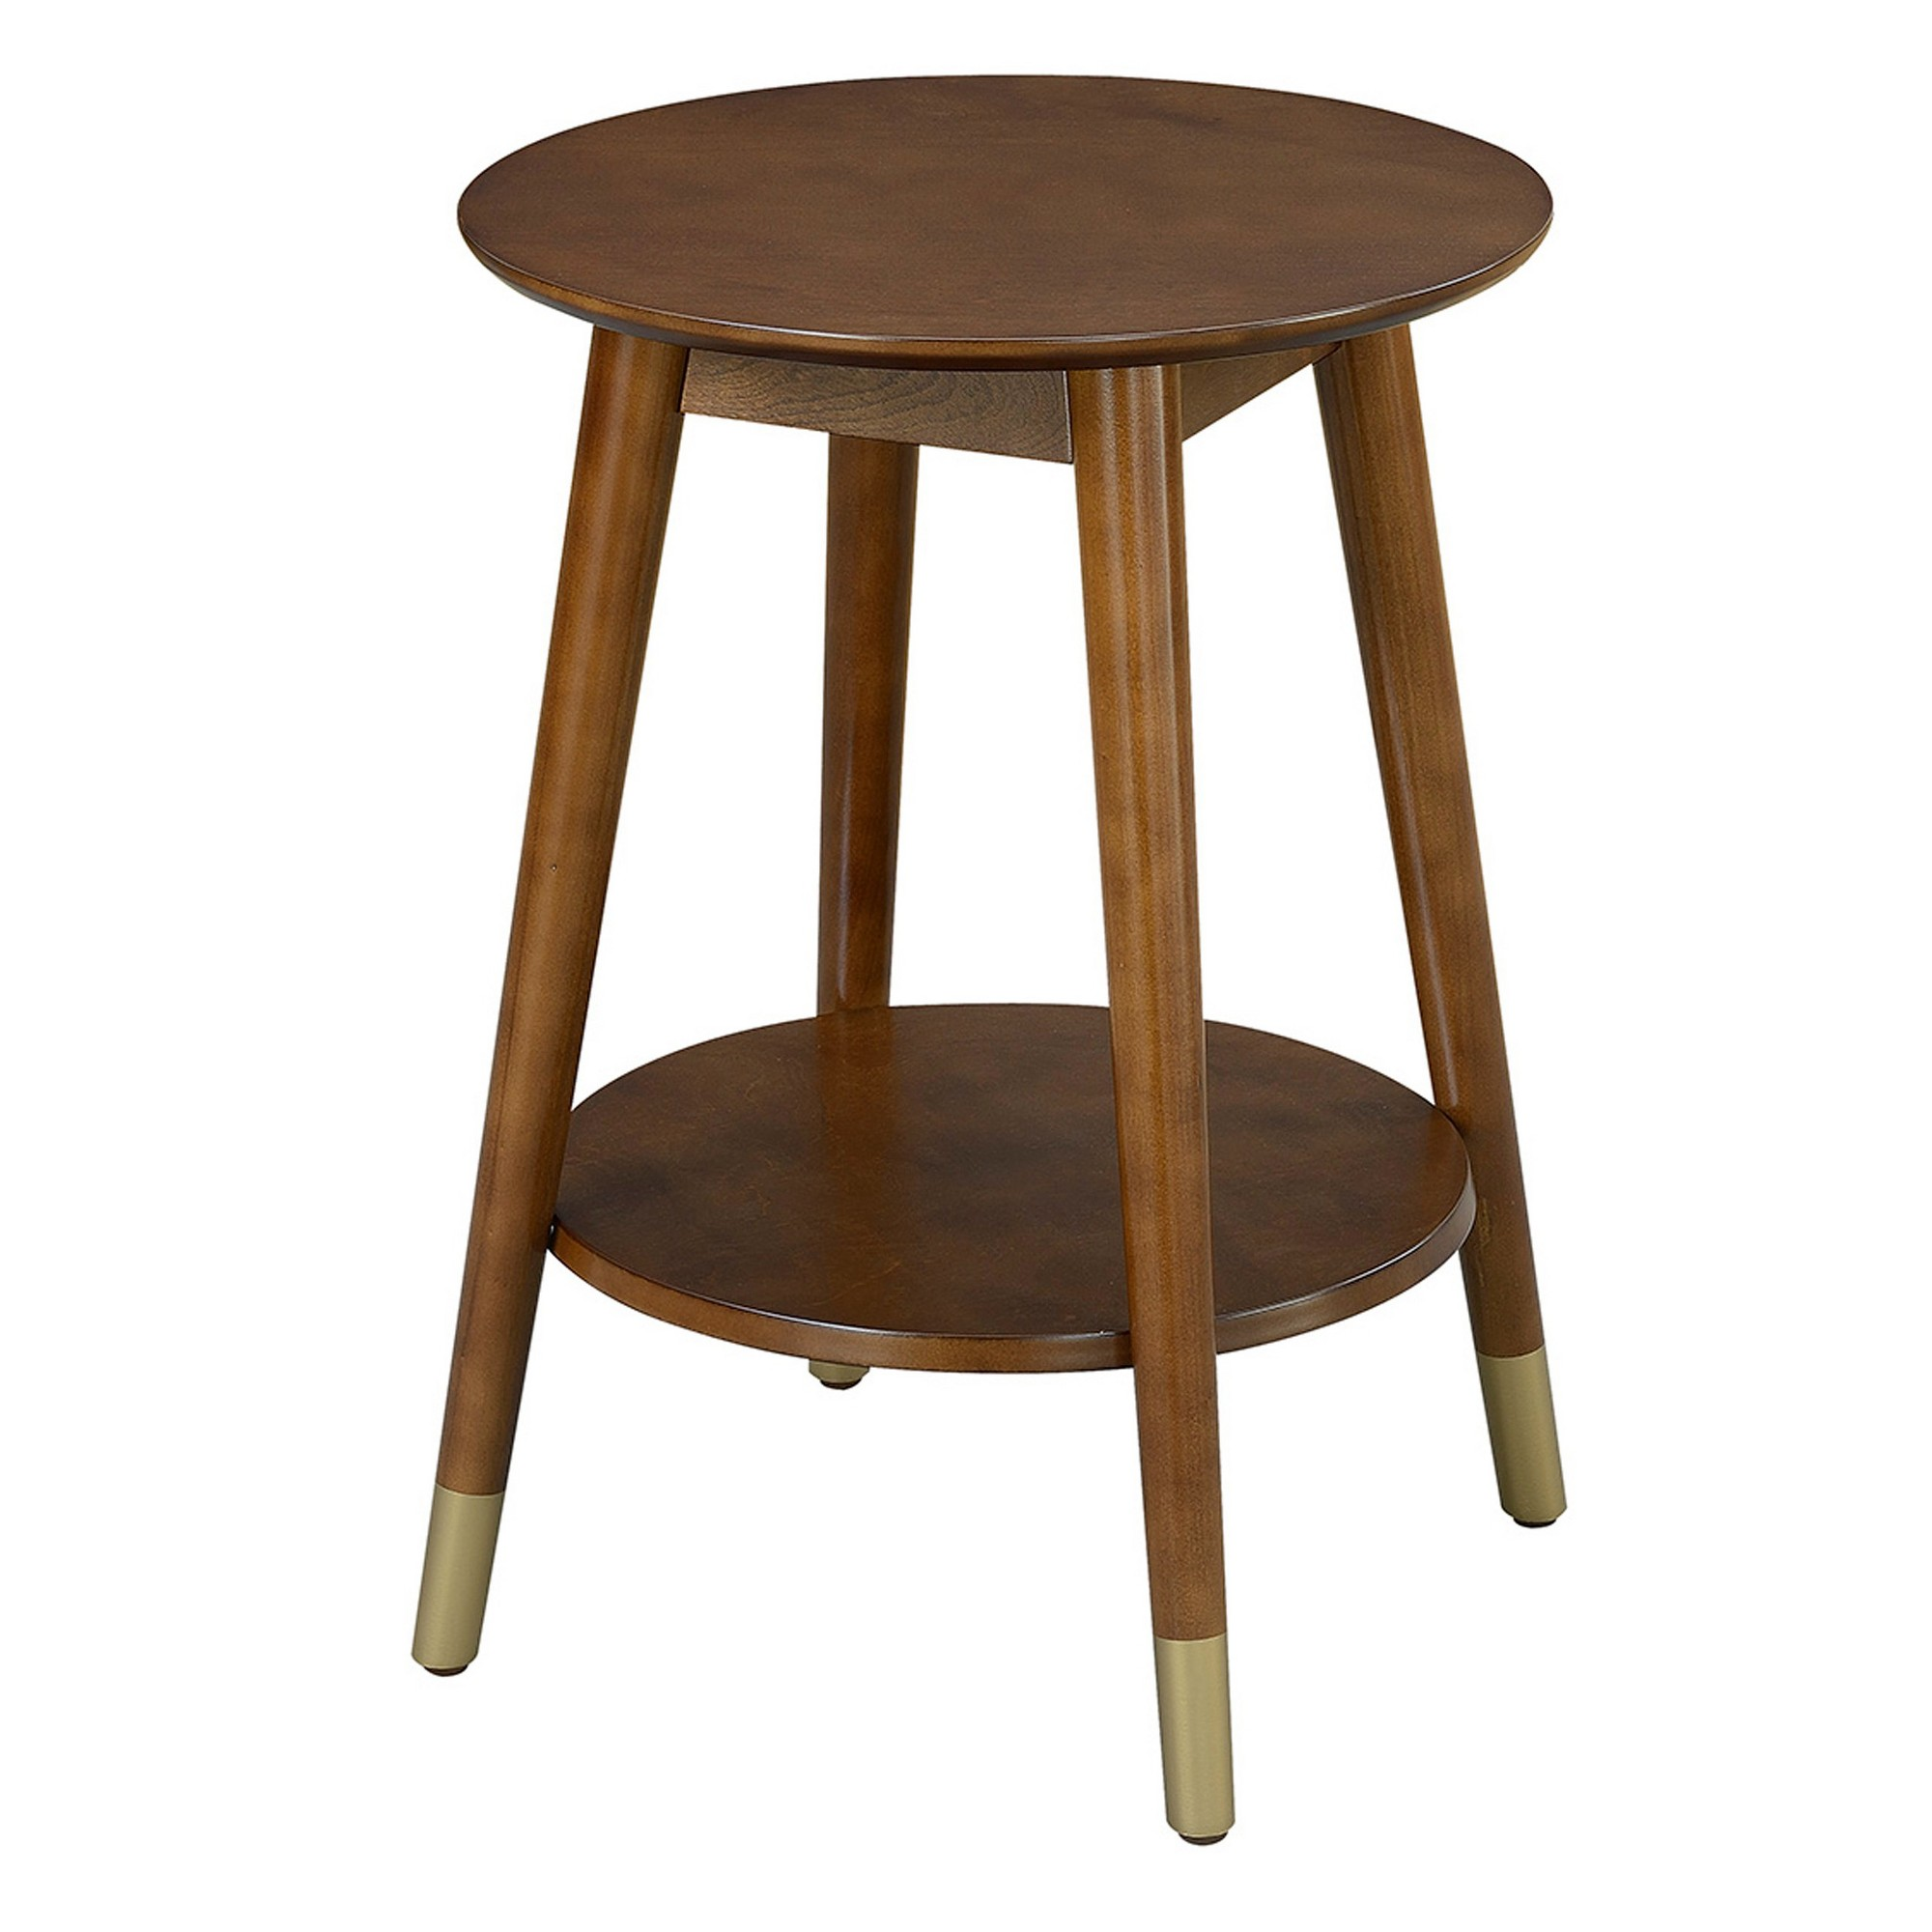 wilson mid century round end table with bottom shelf espresso accent johar furniture brown stackable side tables center decor pub set bedroom packages ashley desk pier one imports